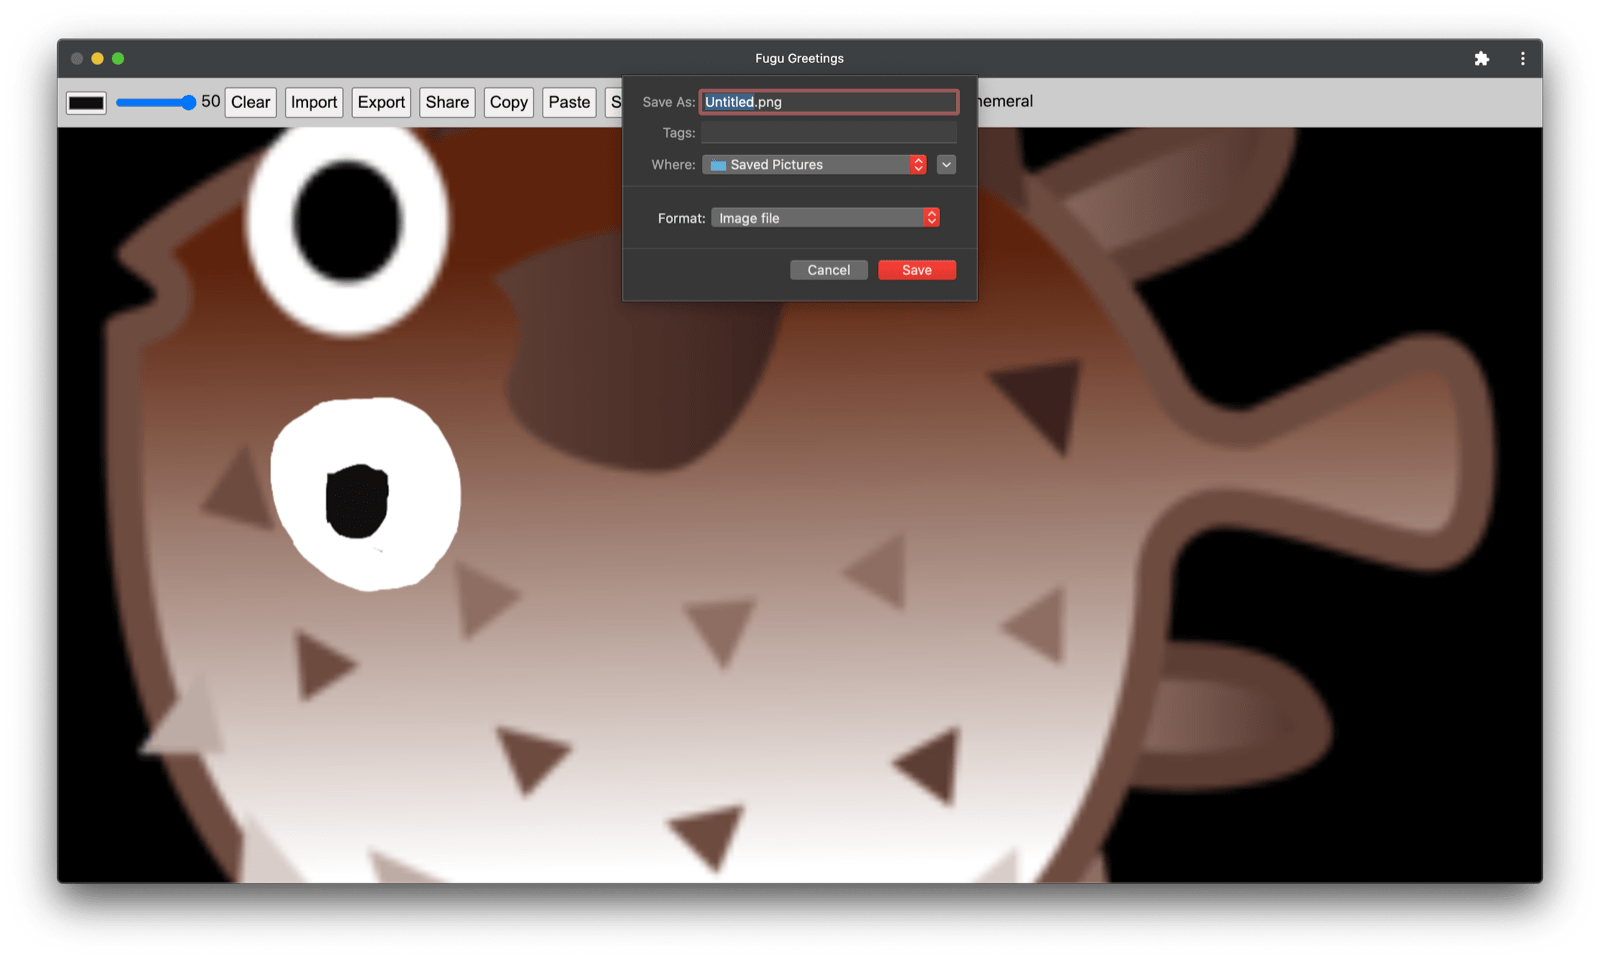 Fugu Greetings app with the modified image.